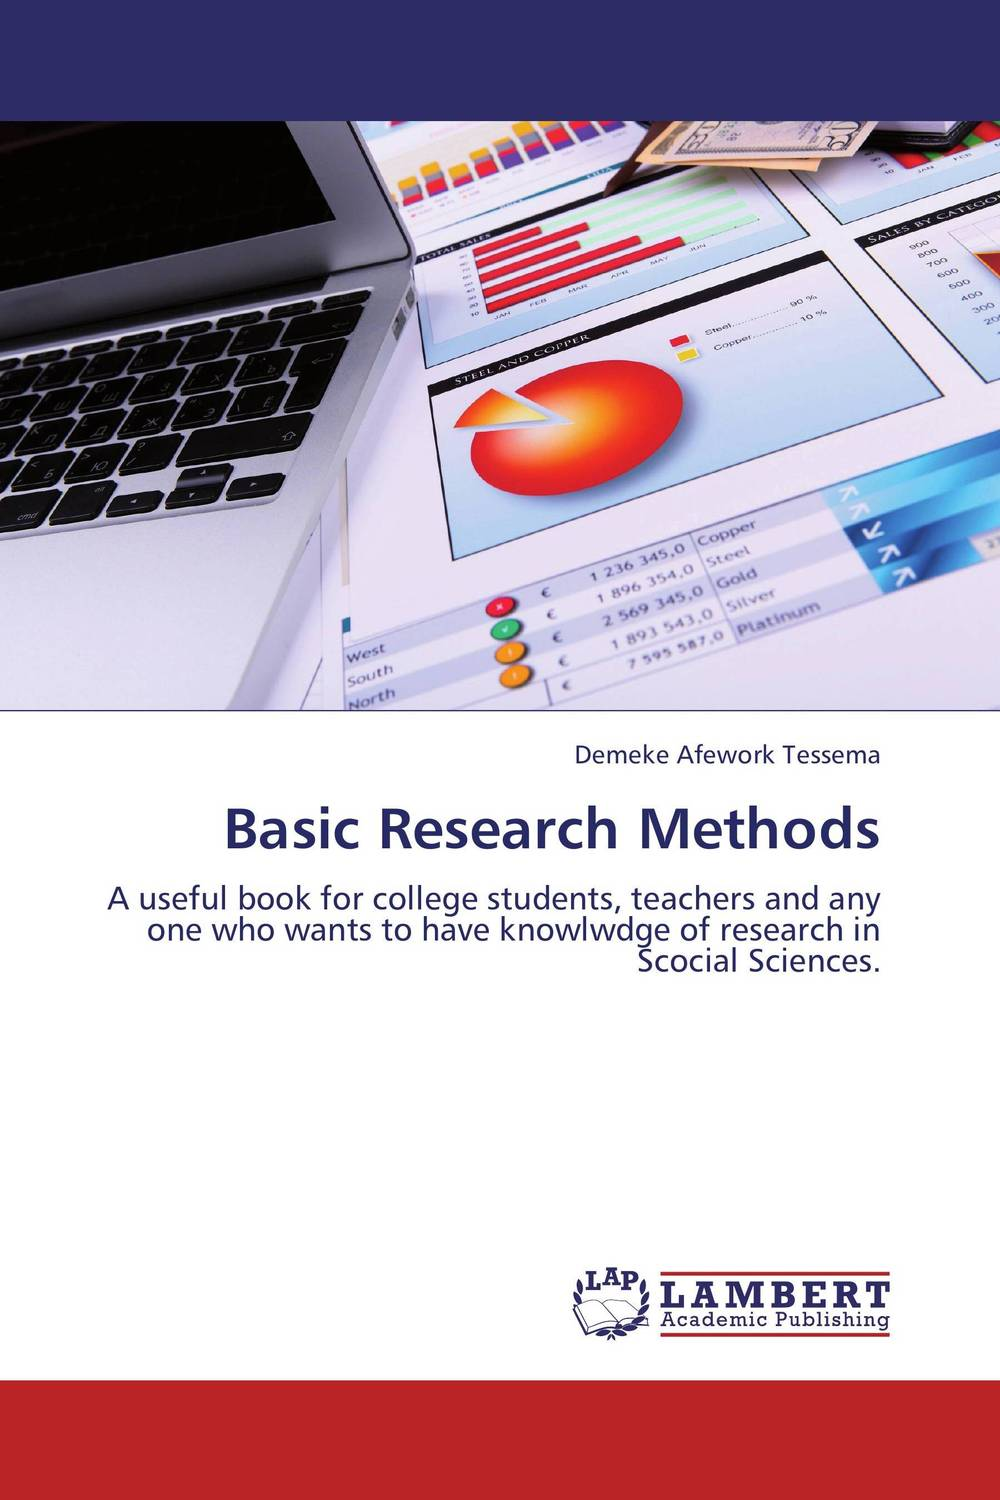 Basic Research Methods joseph lane an answer to the inquiry into the state of the nation